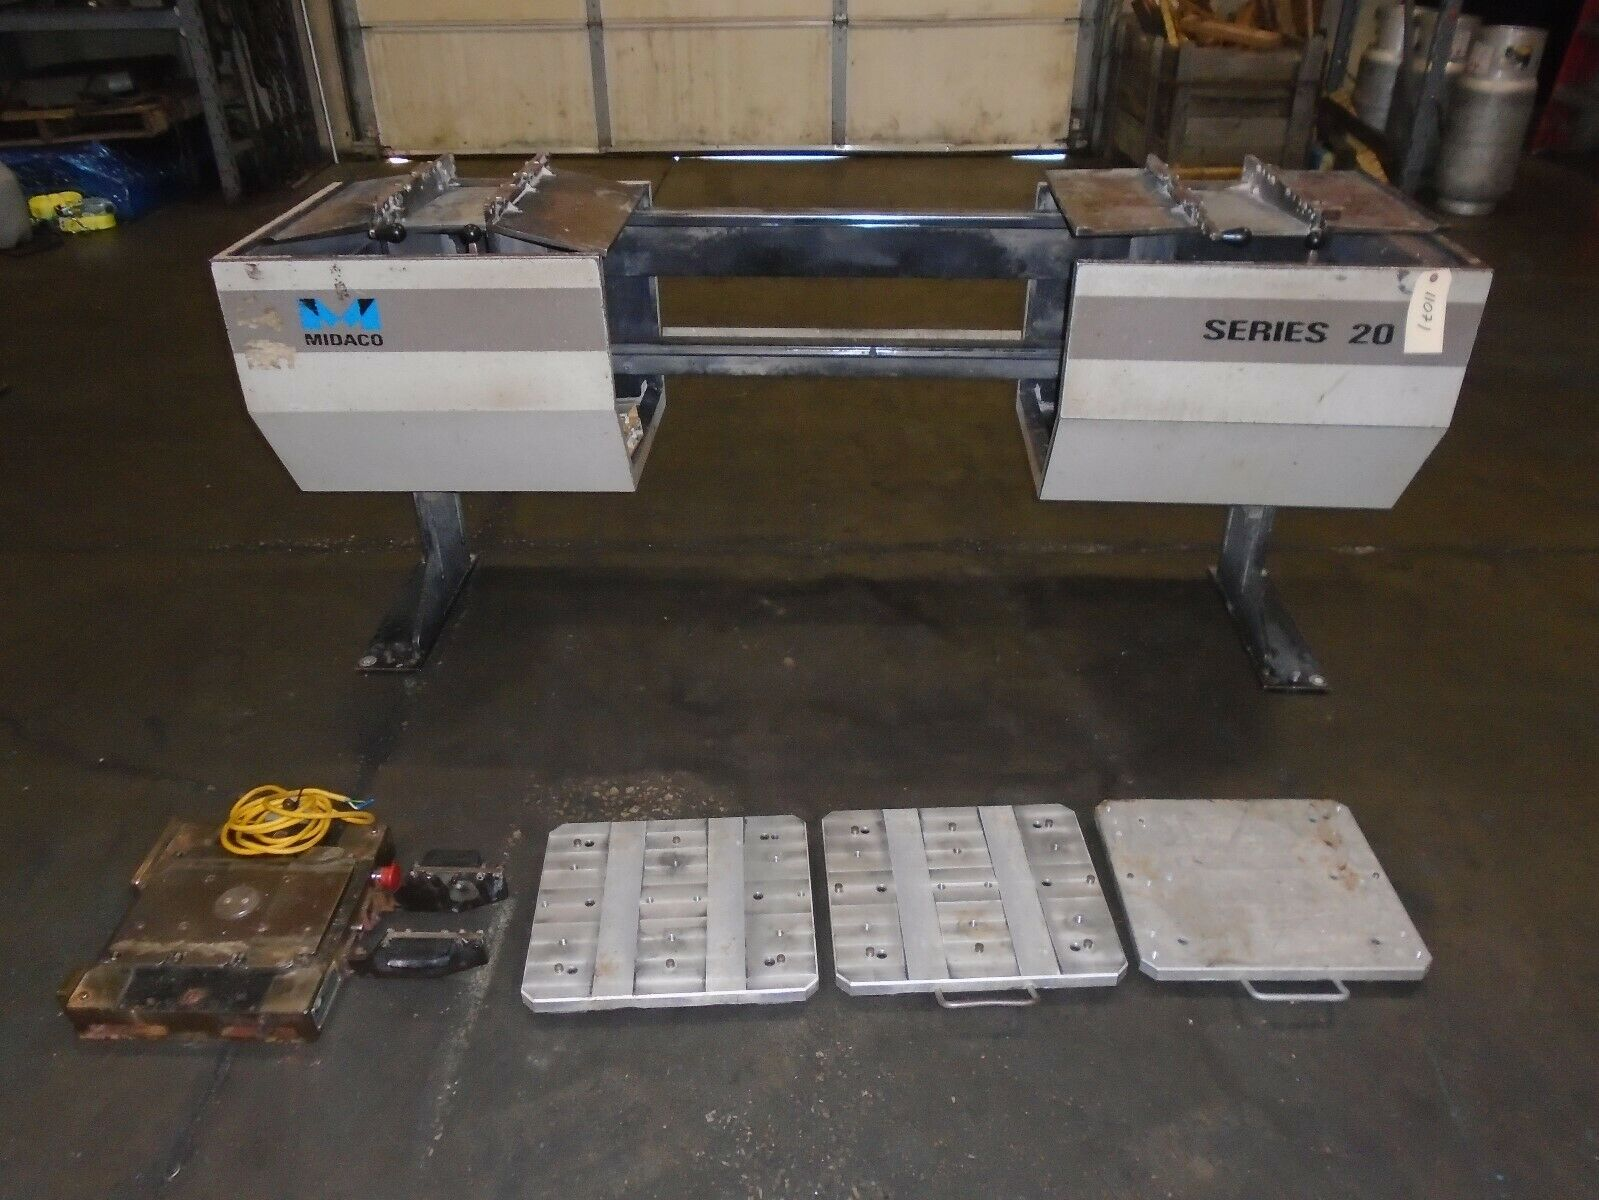 Midaco Series 20 Pallet Changer With 3 Pallets & Receiver - Image 2 of 9